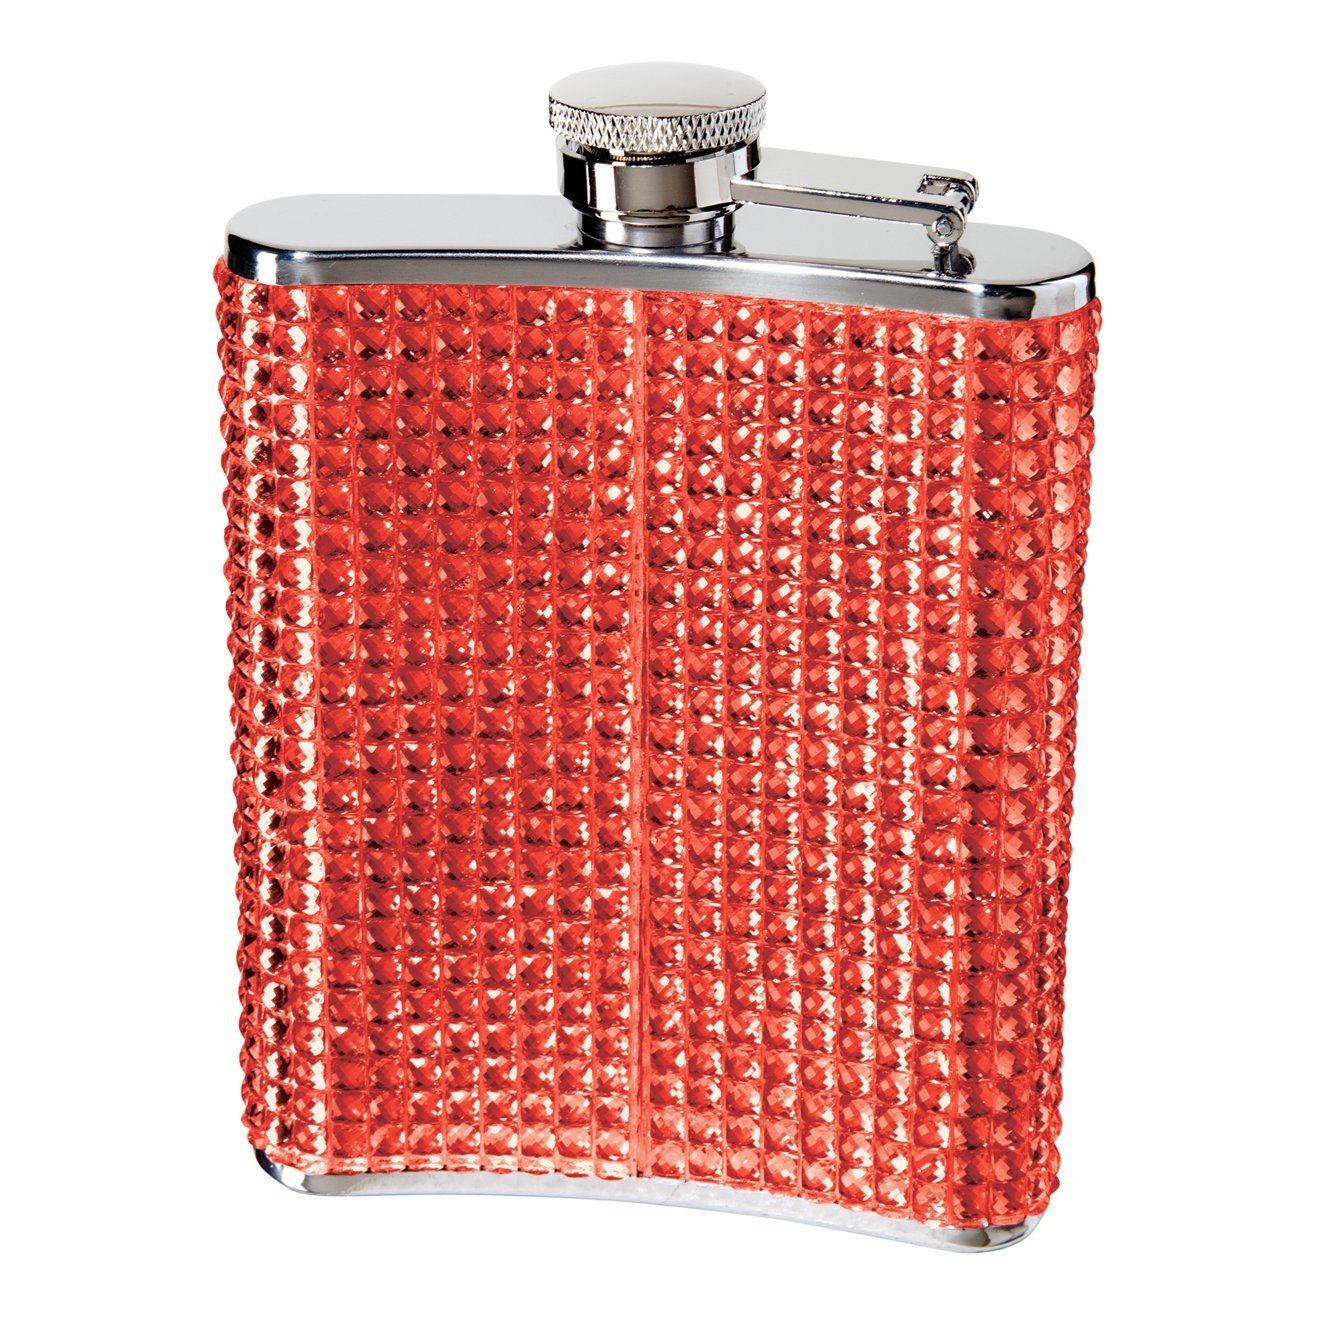 OGGI 9248 Glitter and Glitz Stainless Steel Hip Flask